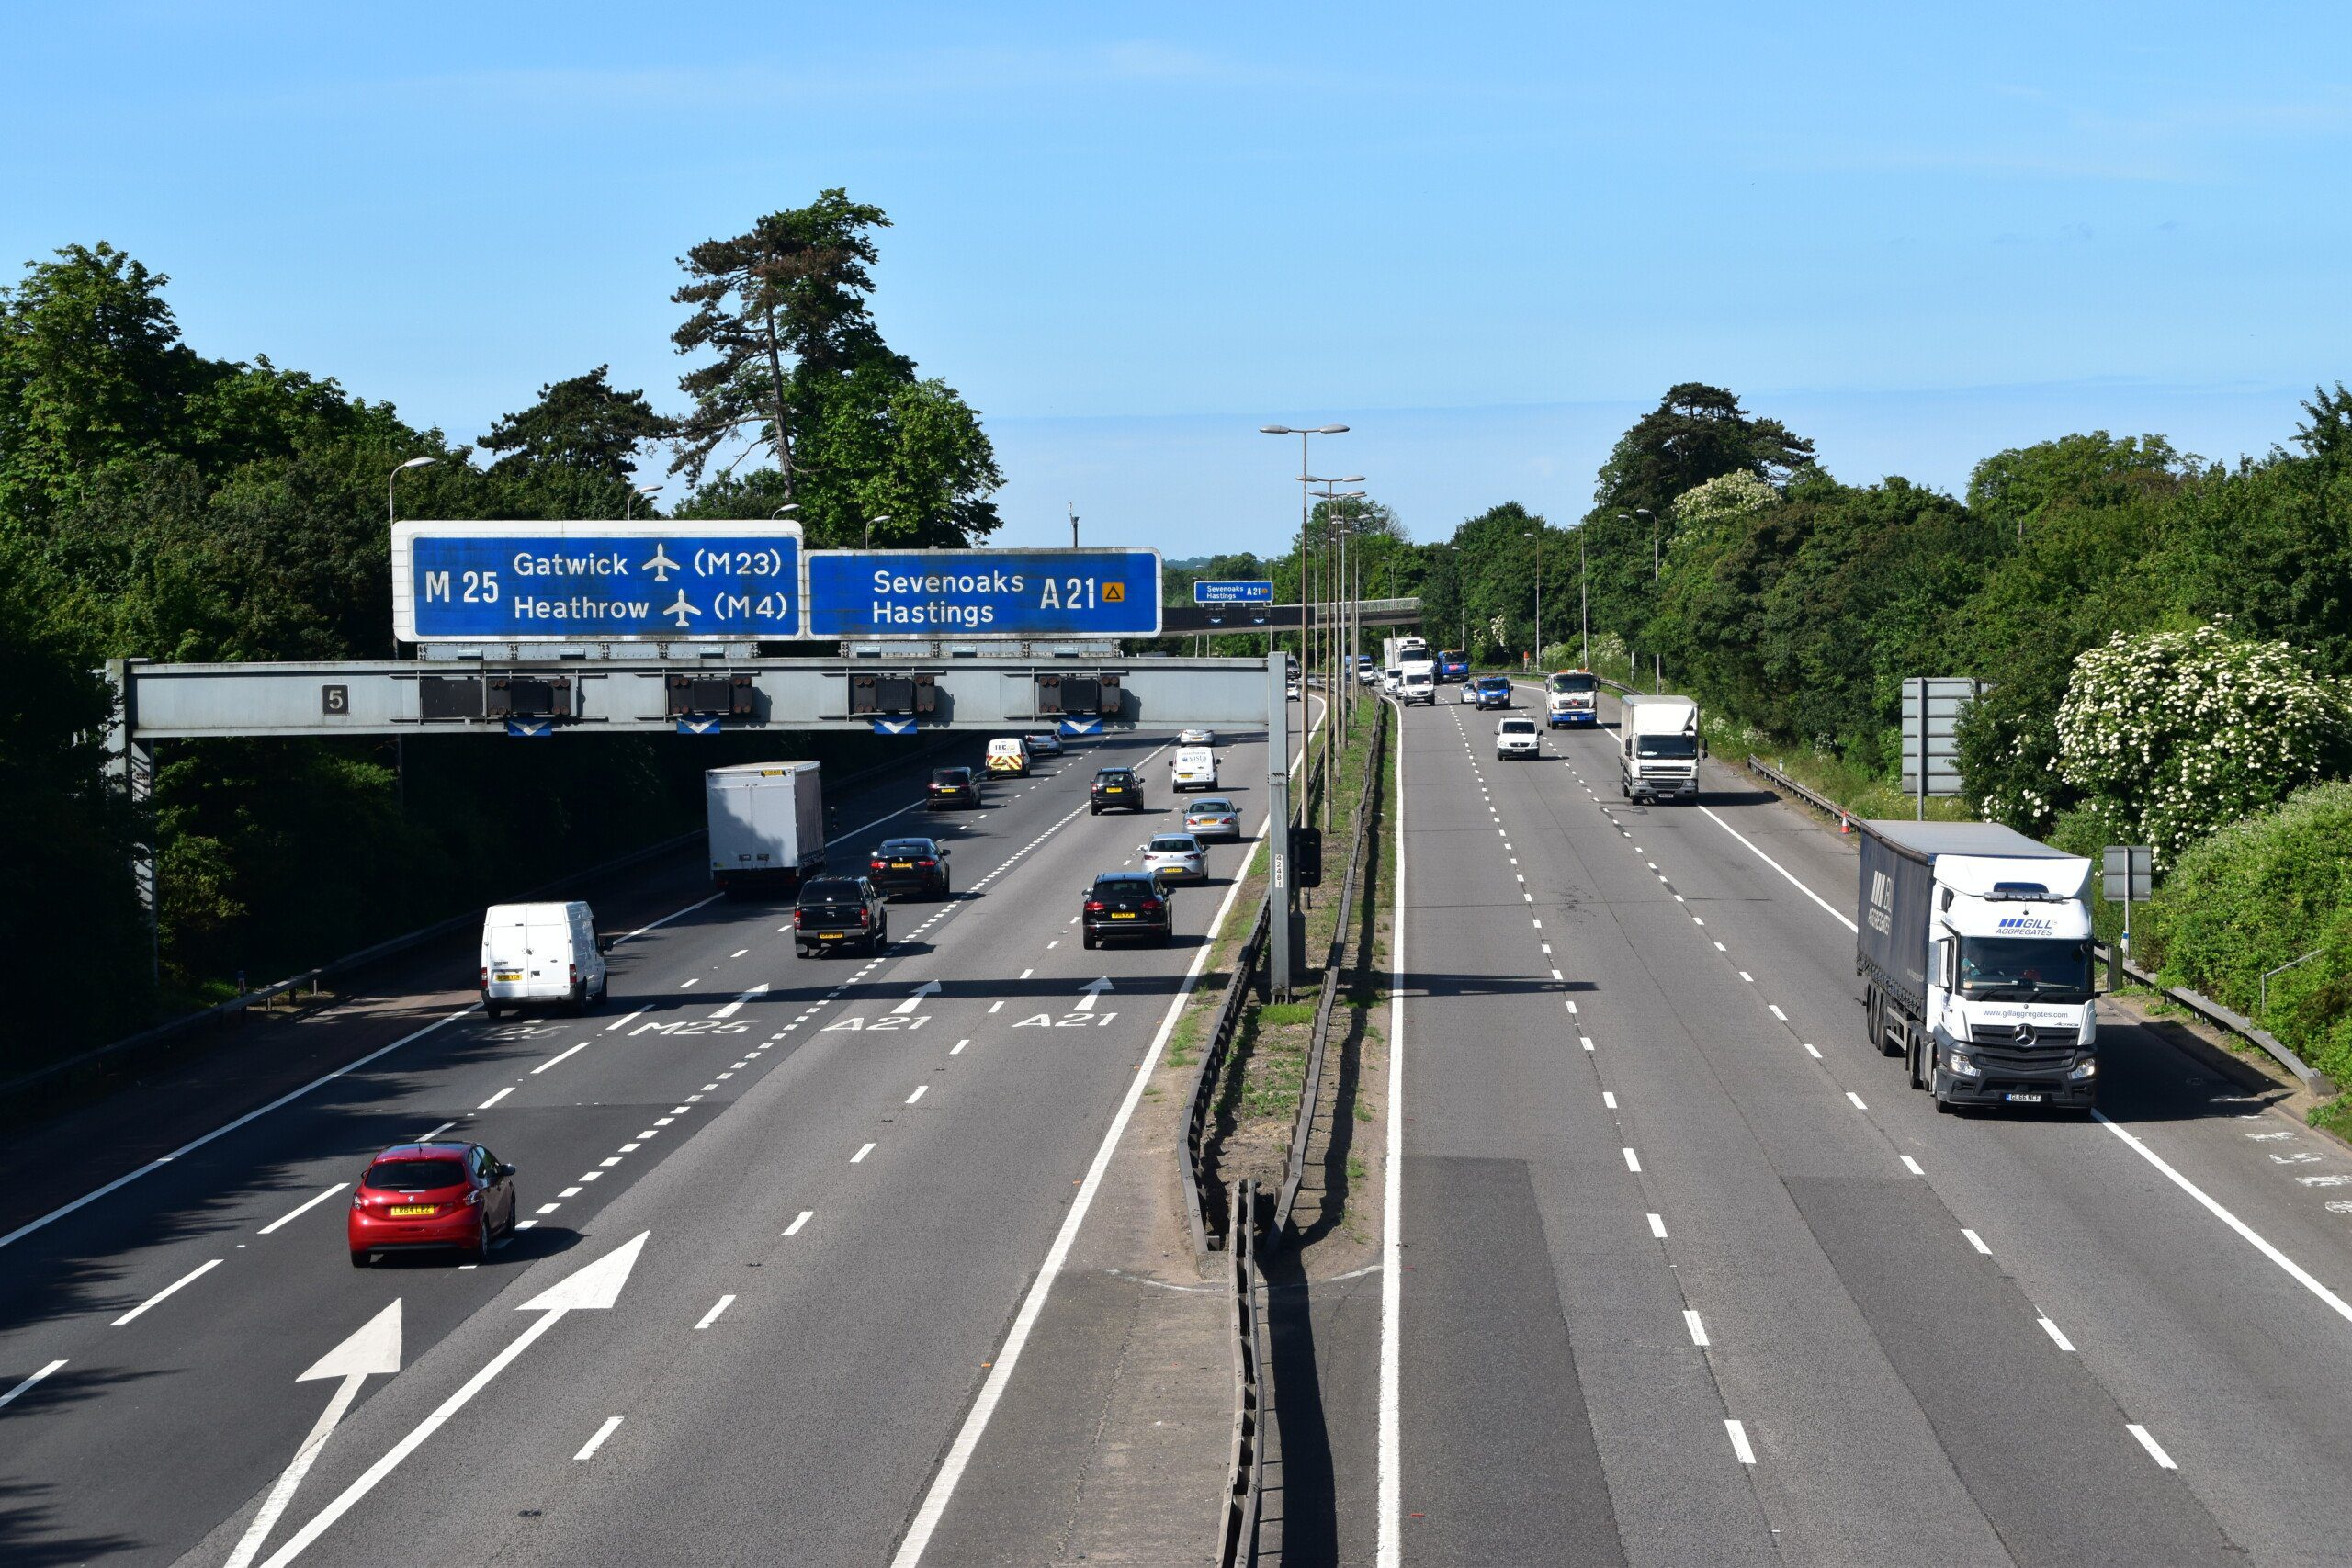 M25 from the pedestrian crossing on the North Downs Way